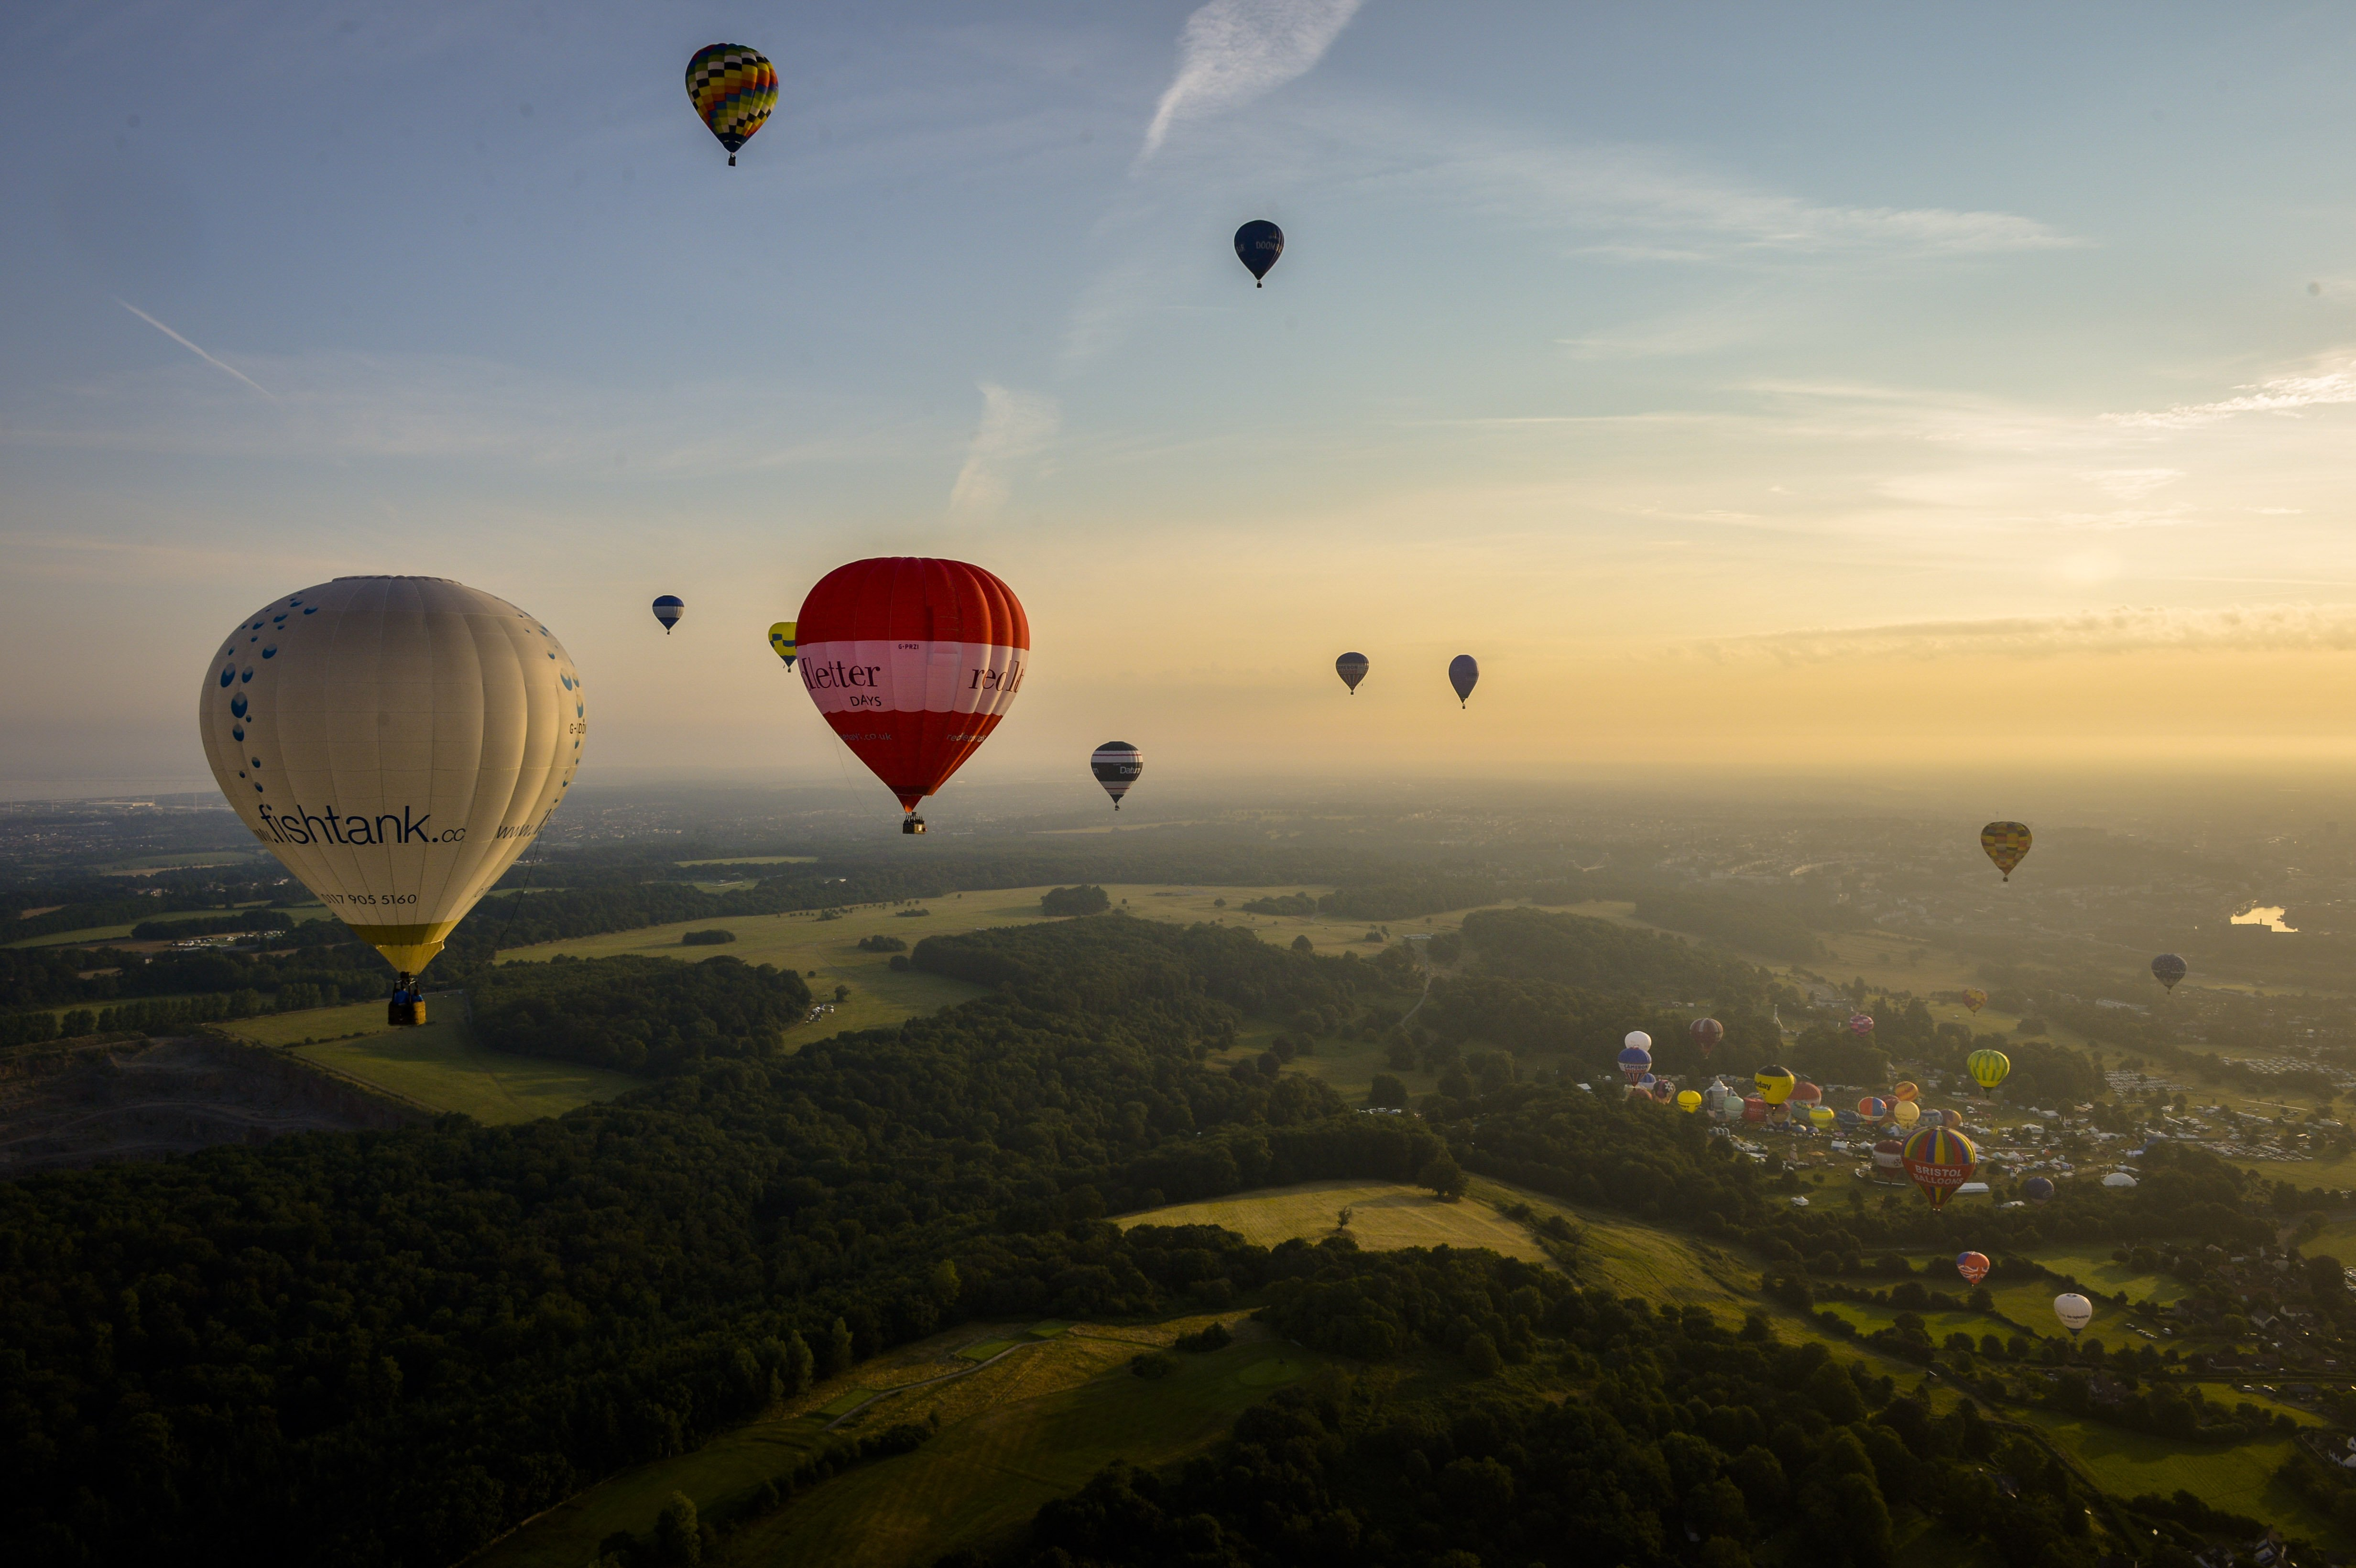 Aug. 8, 2014. Hot air balloons over north Somerset following a mass ascent at the 36th International Balloon Fiesta at the Ashton Court Estate near Bristol, UK, which is Europe's largest ballooning event.